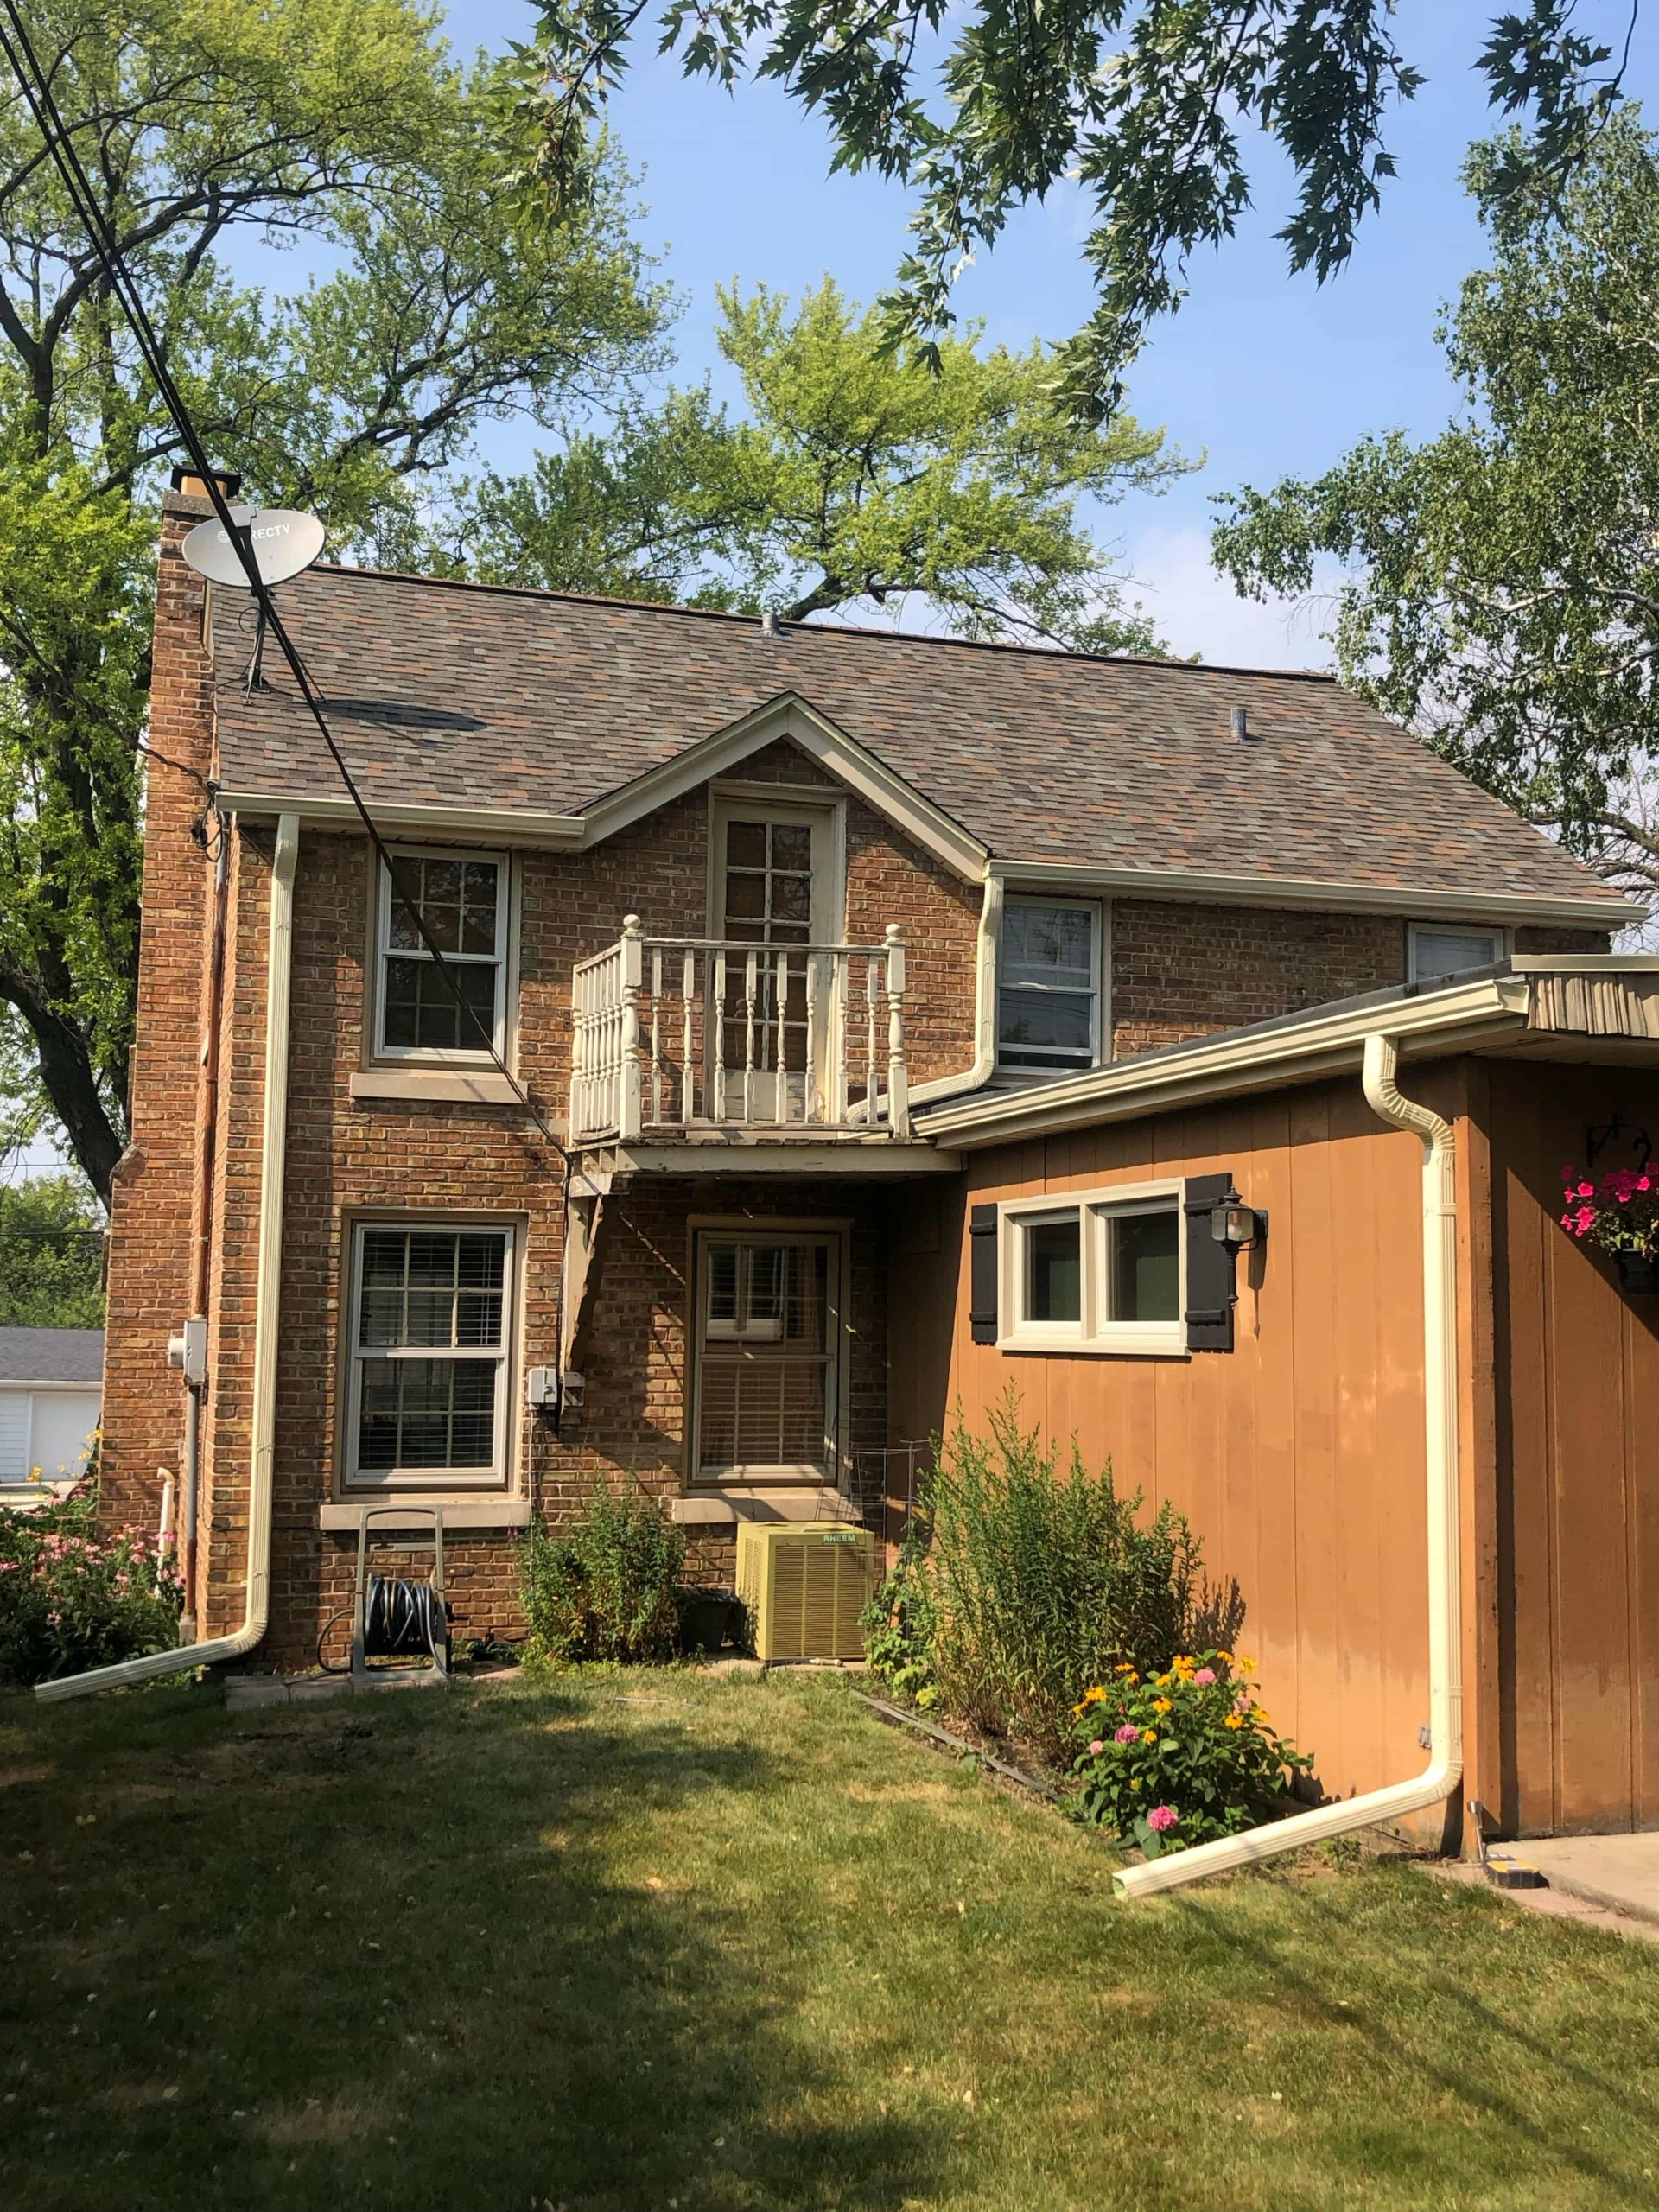 Wisconsin Roofing | Owens Corning Designer Shingles | Aged Copper | Backyard